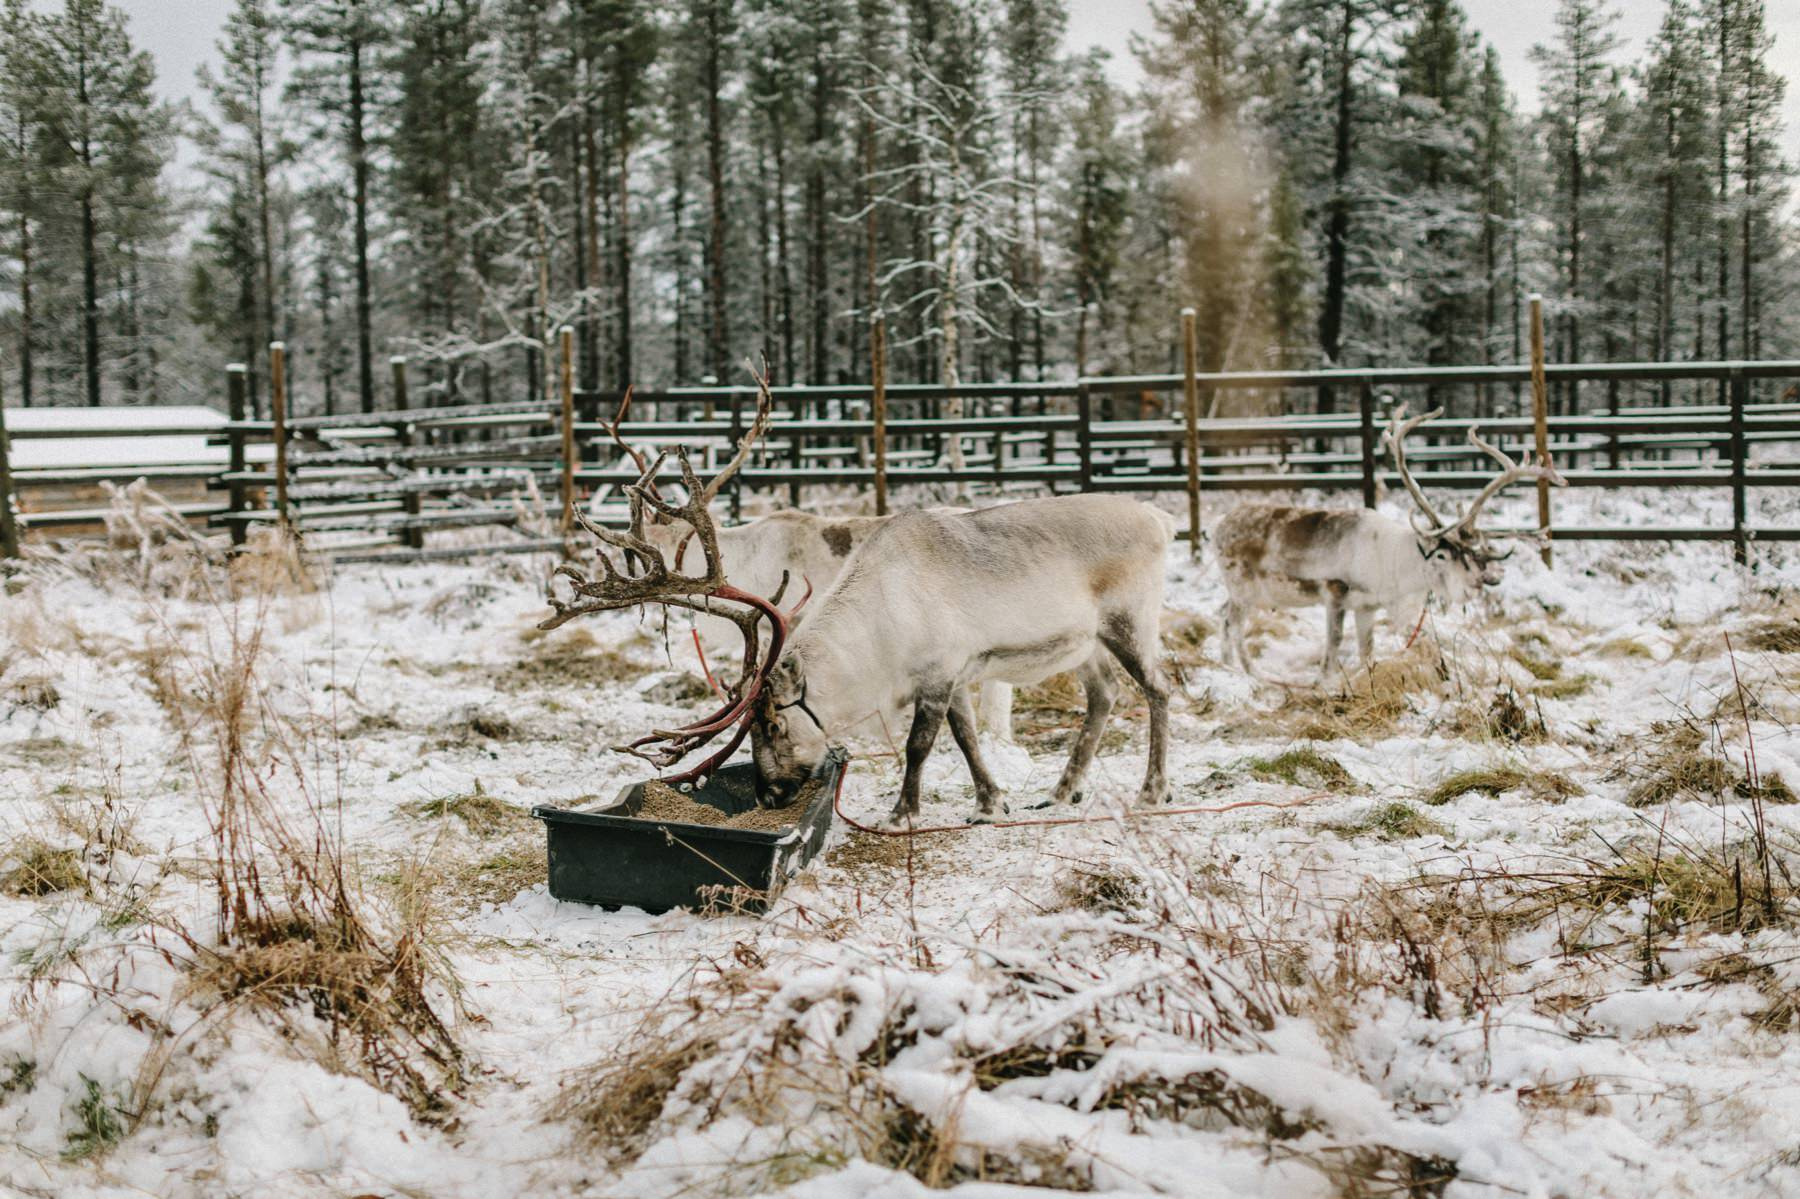 photo session with reindeers